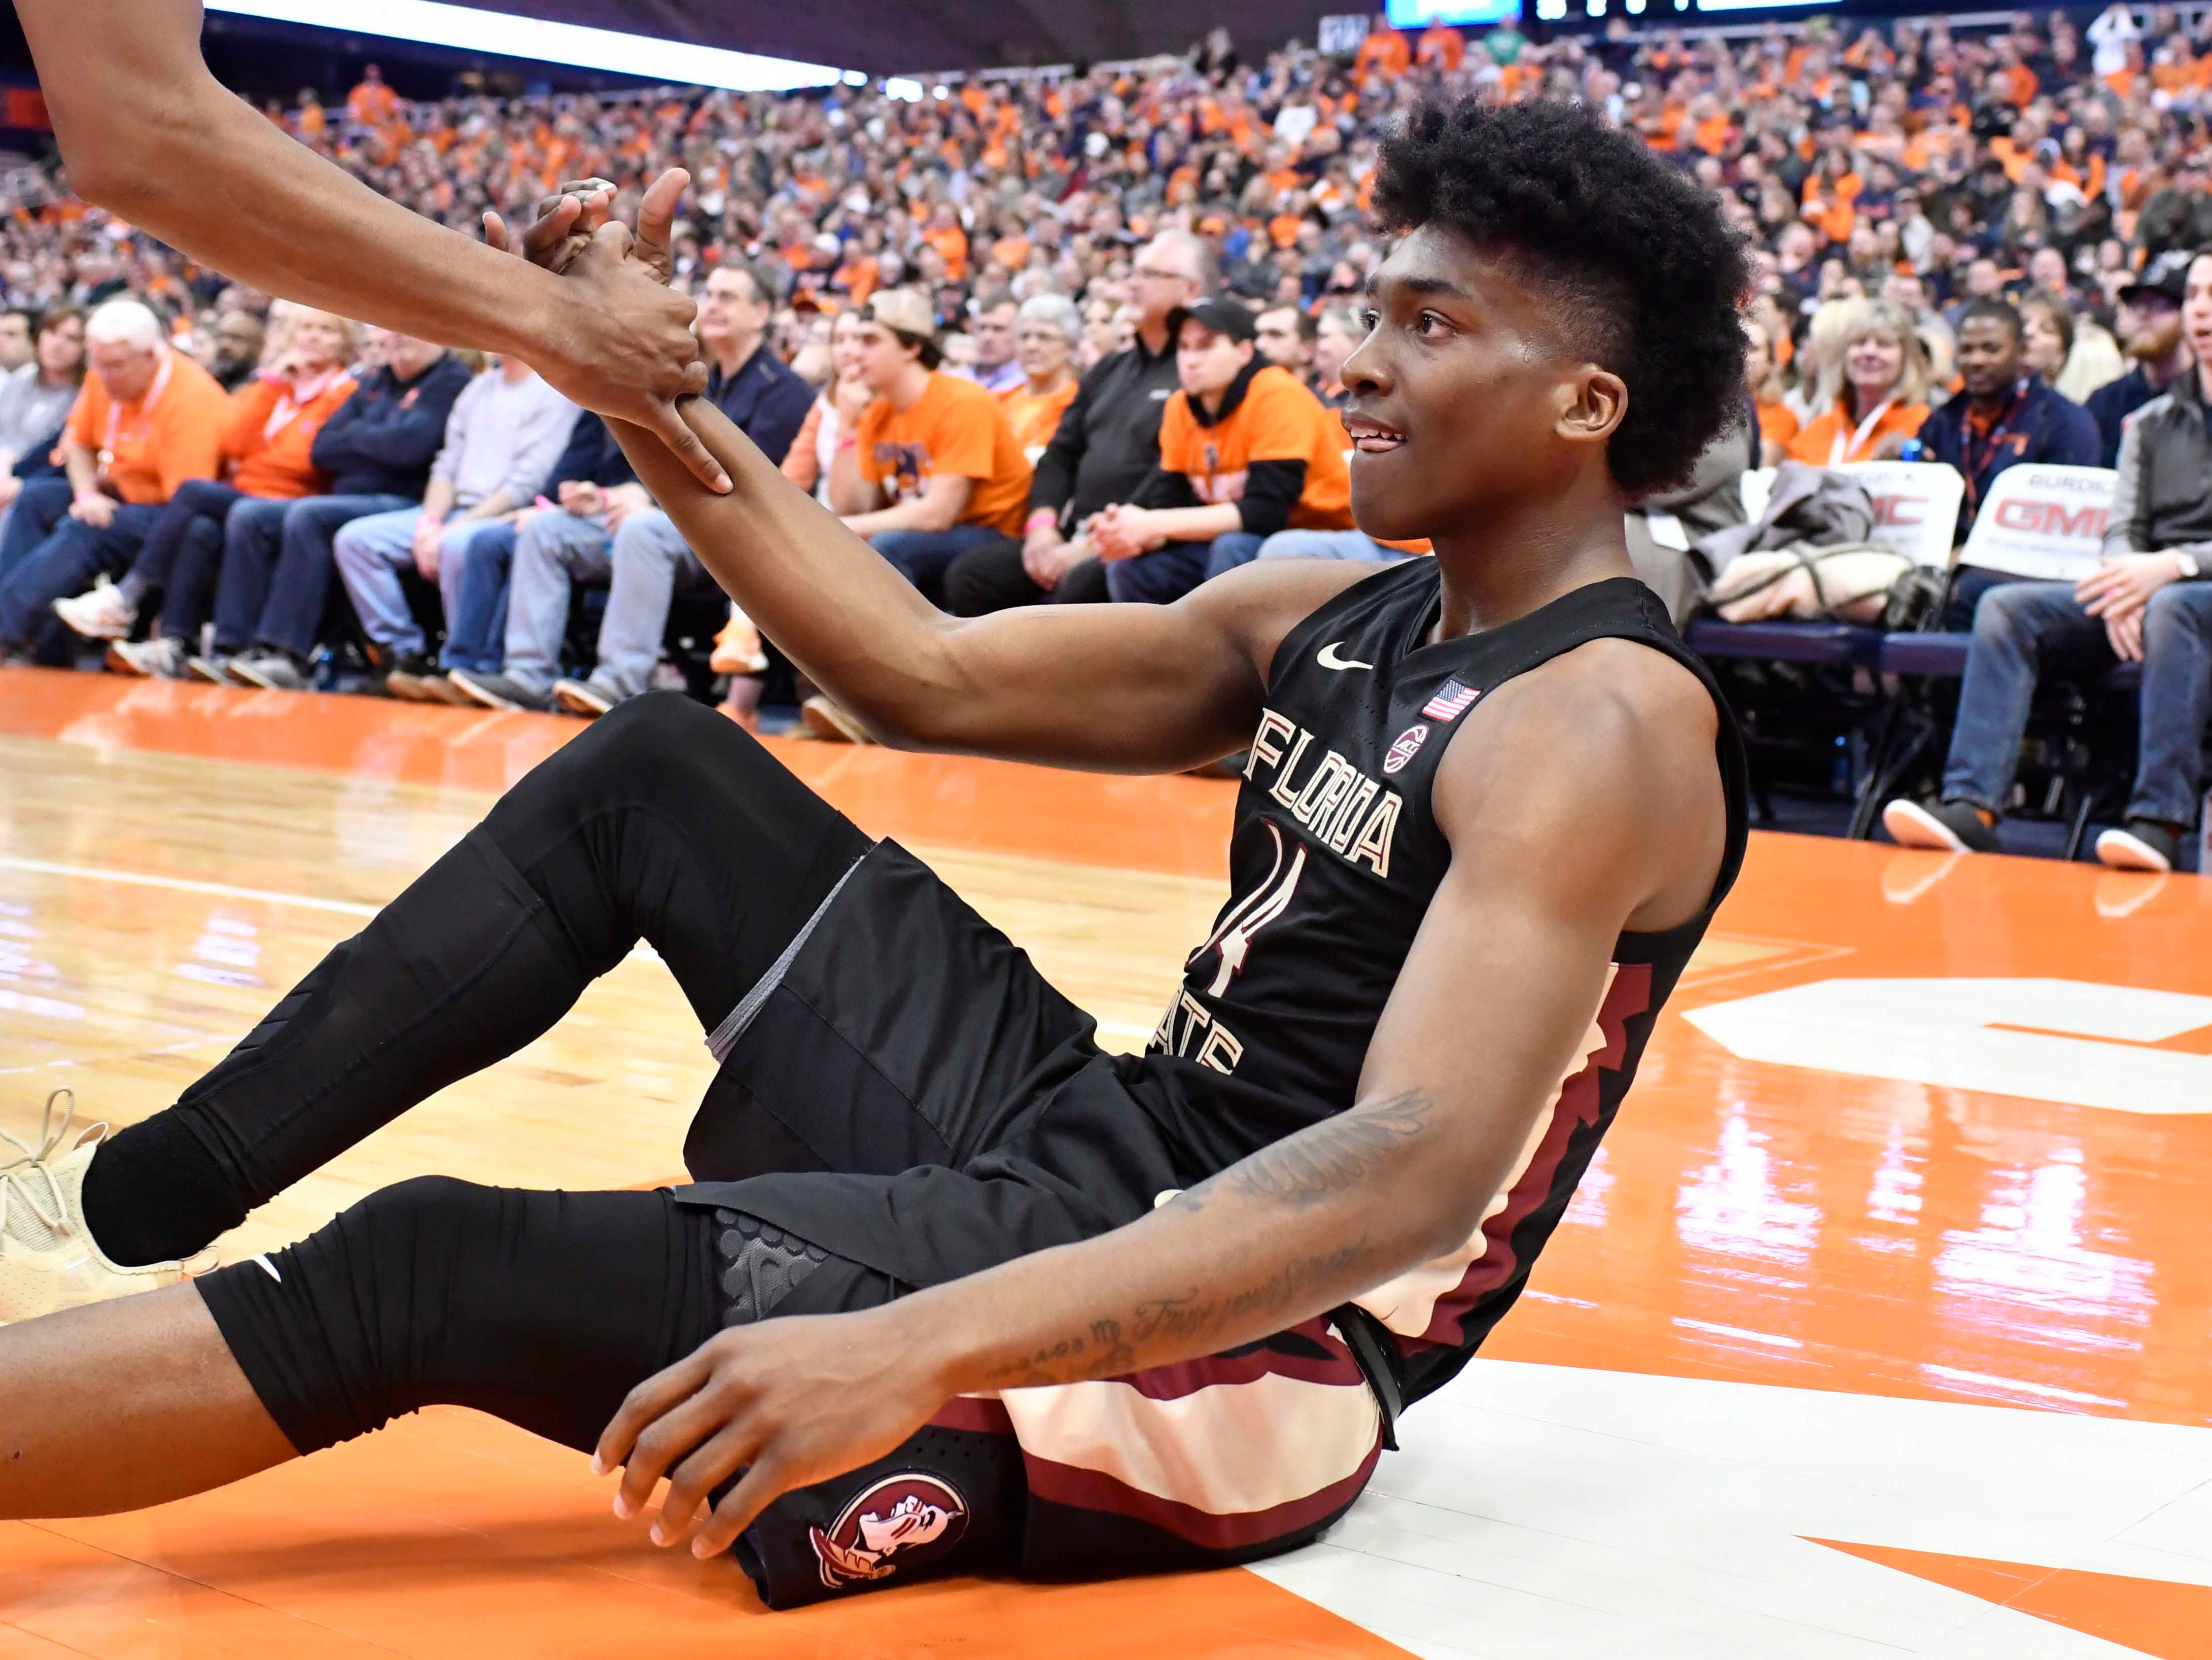 Feb 5, 2019; Syracuse, NY, USA; Florida State Seminoles guard Terance Mann (14) gets up off the floor after being fouled on a shot in the first half against the Syracuse Orange at the Carrier Dome. Mandatory Credit: Mark Konezny-USA TODAY Sports